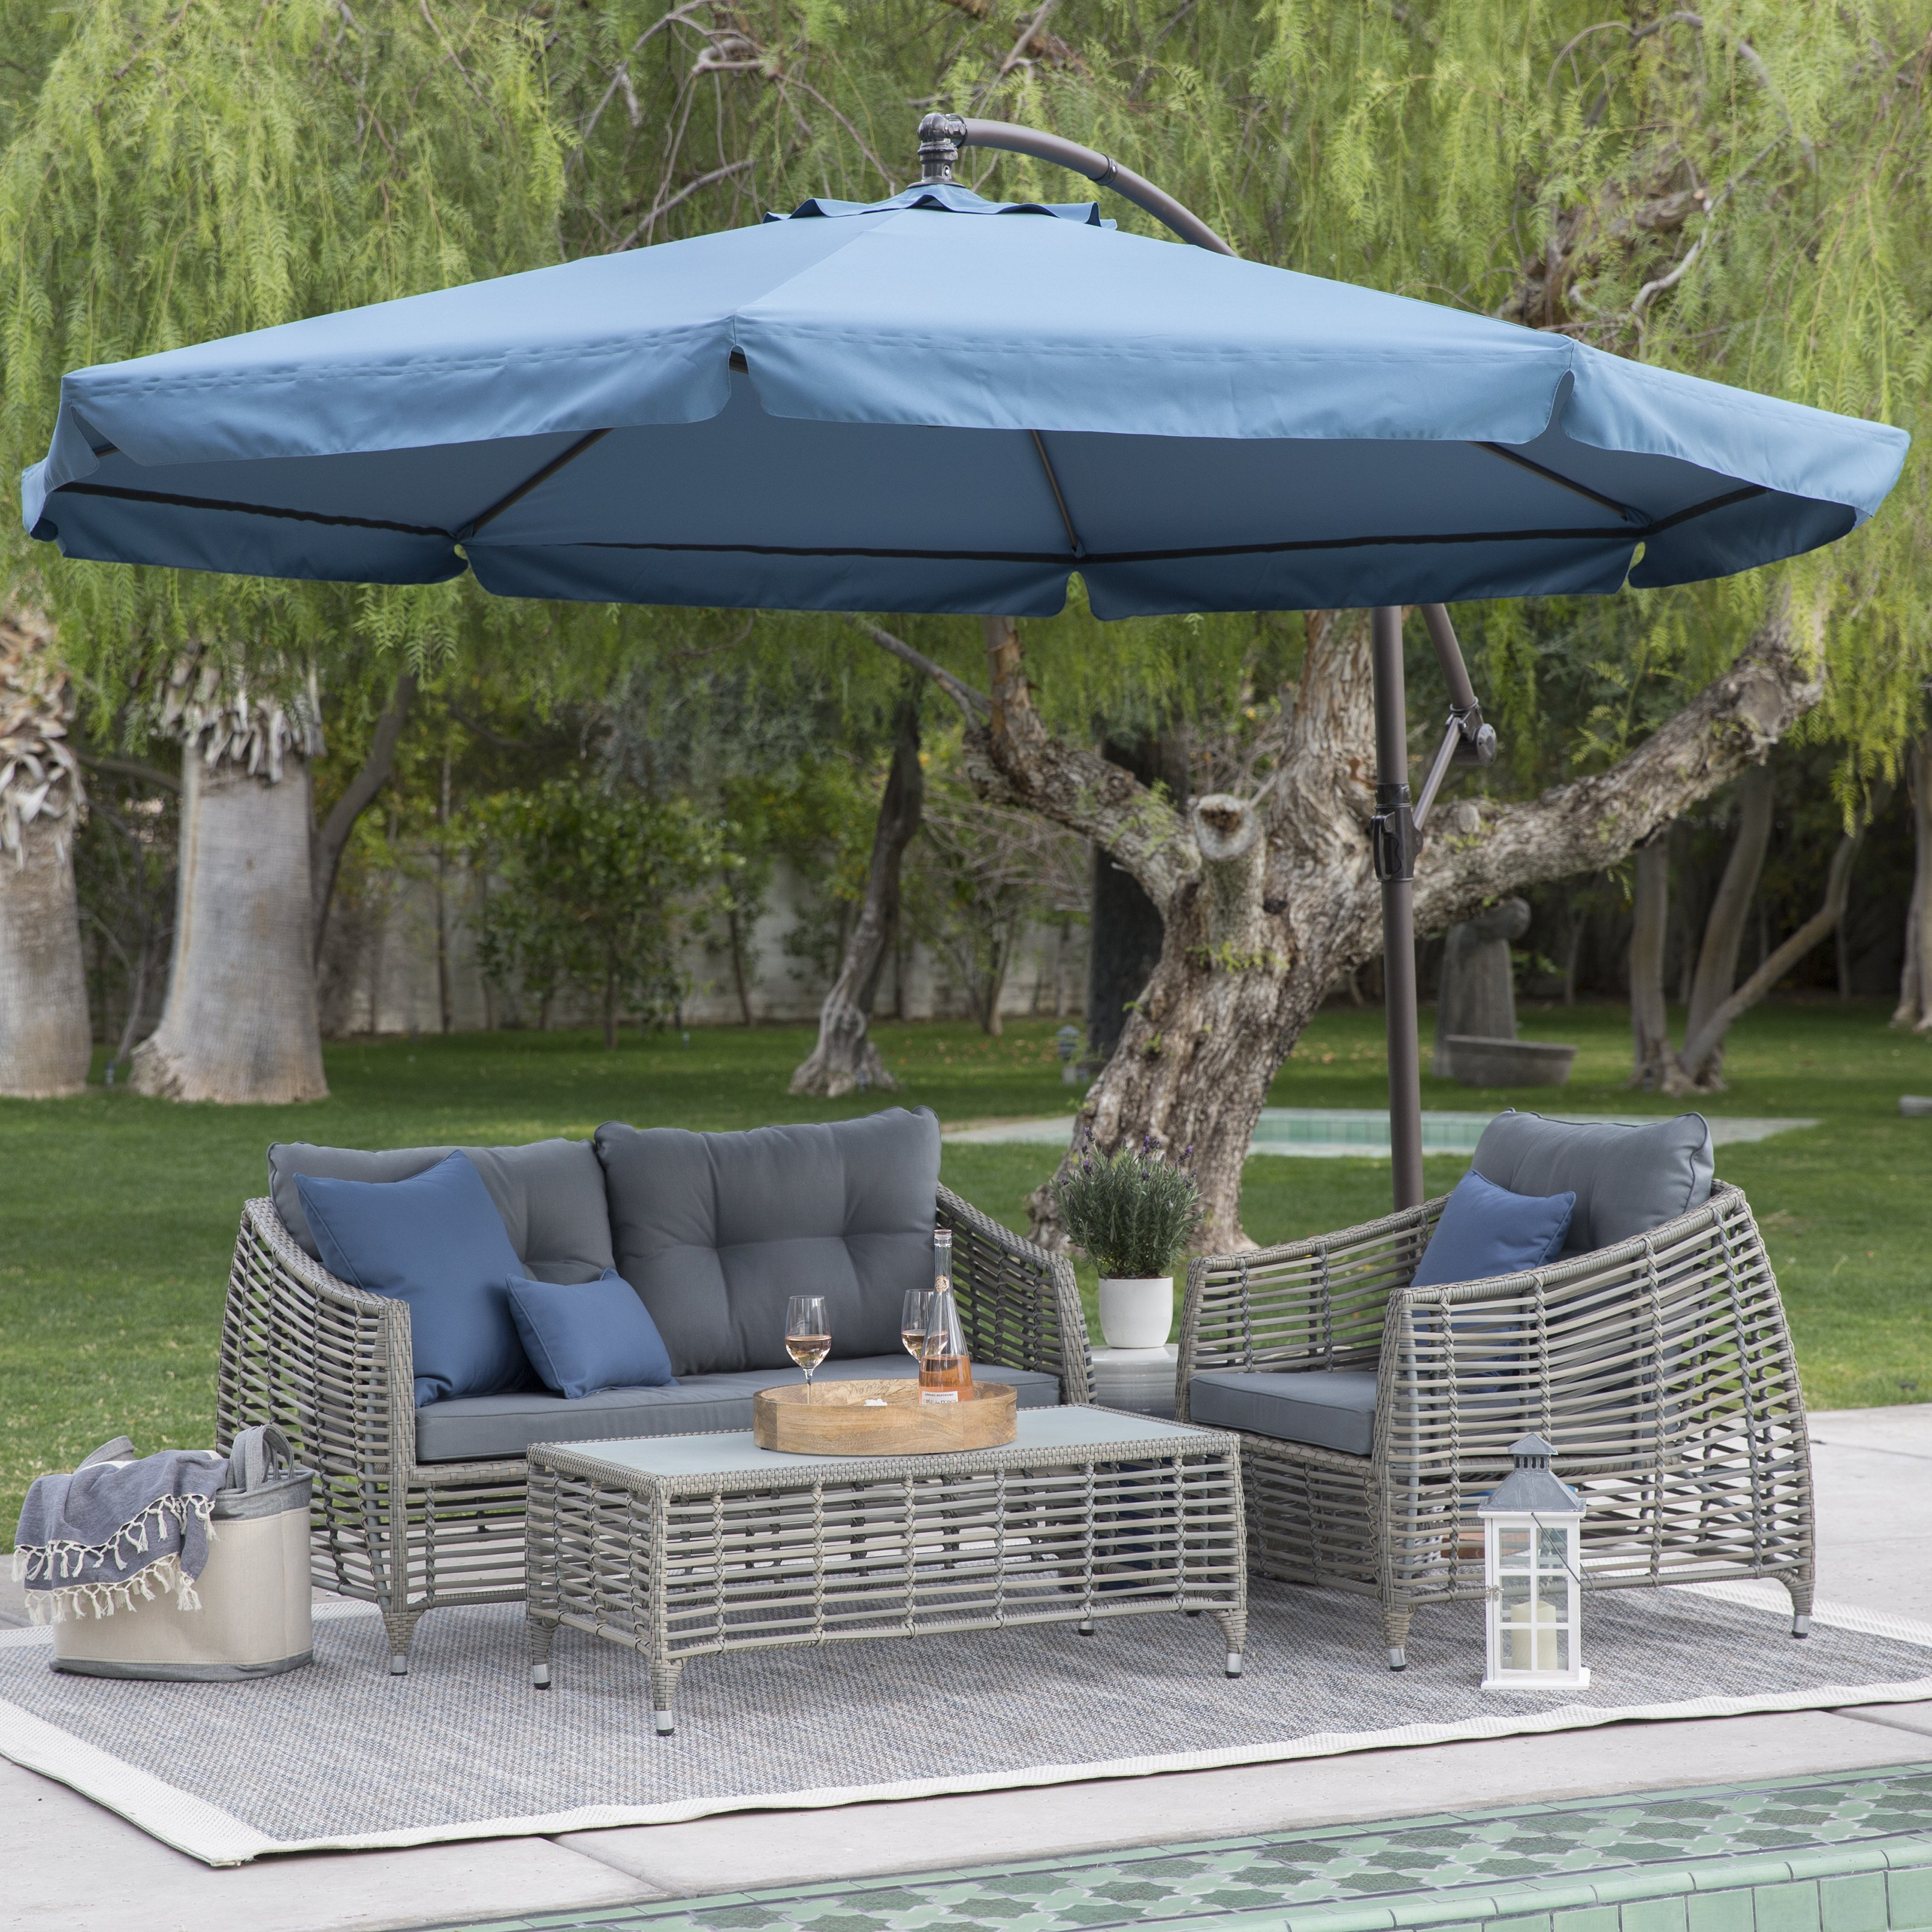 Cantilever Patio Umbrellas | Gas Fire Pit Tables Costco | Costco Offset Umbrella